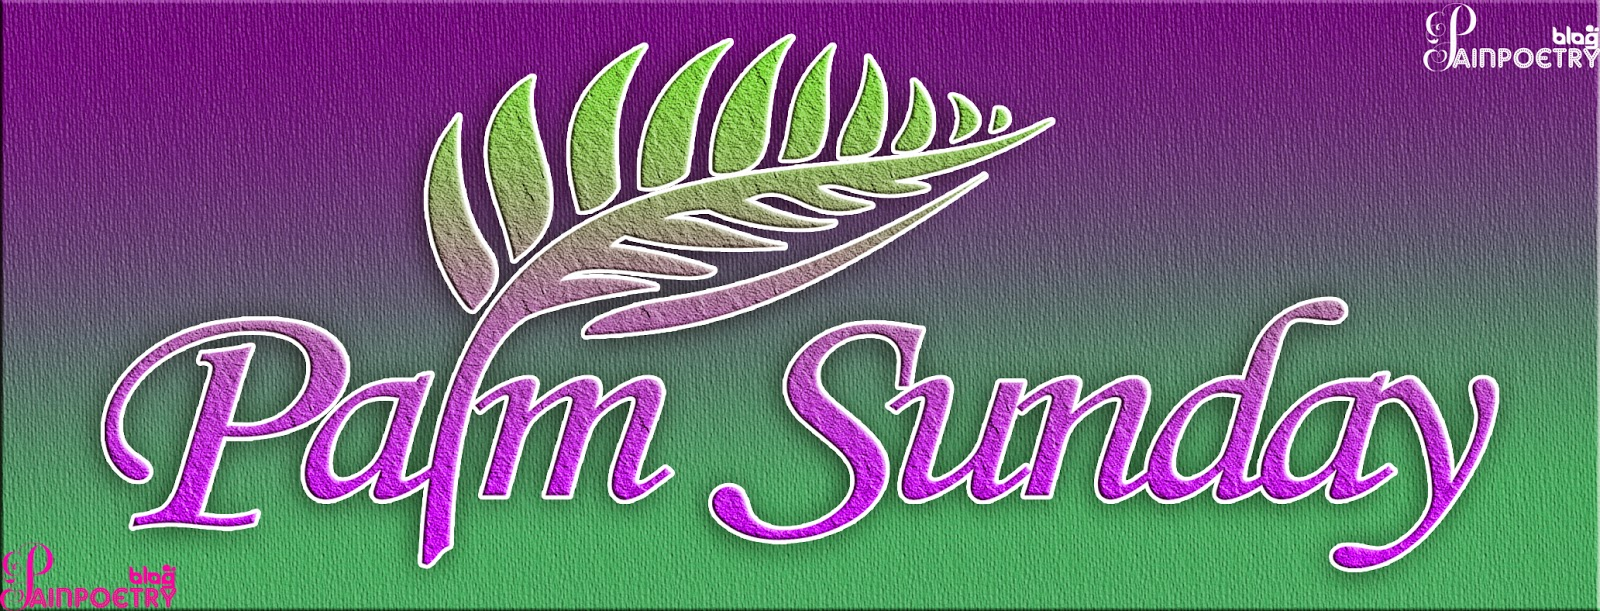 Palm-Sunday-Image-HD-Wide